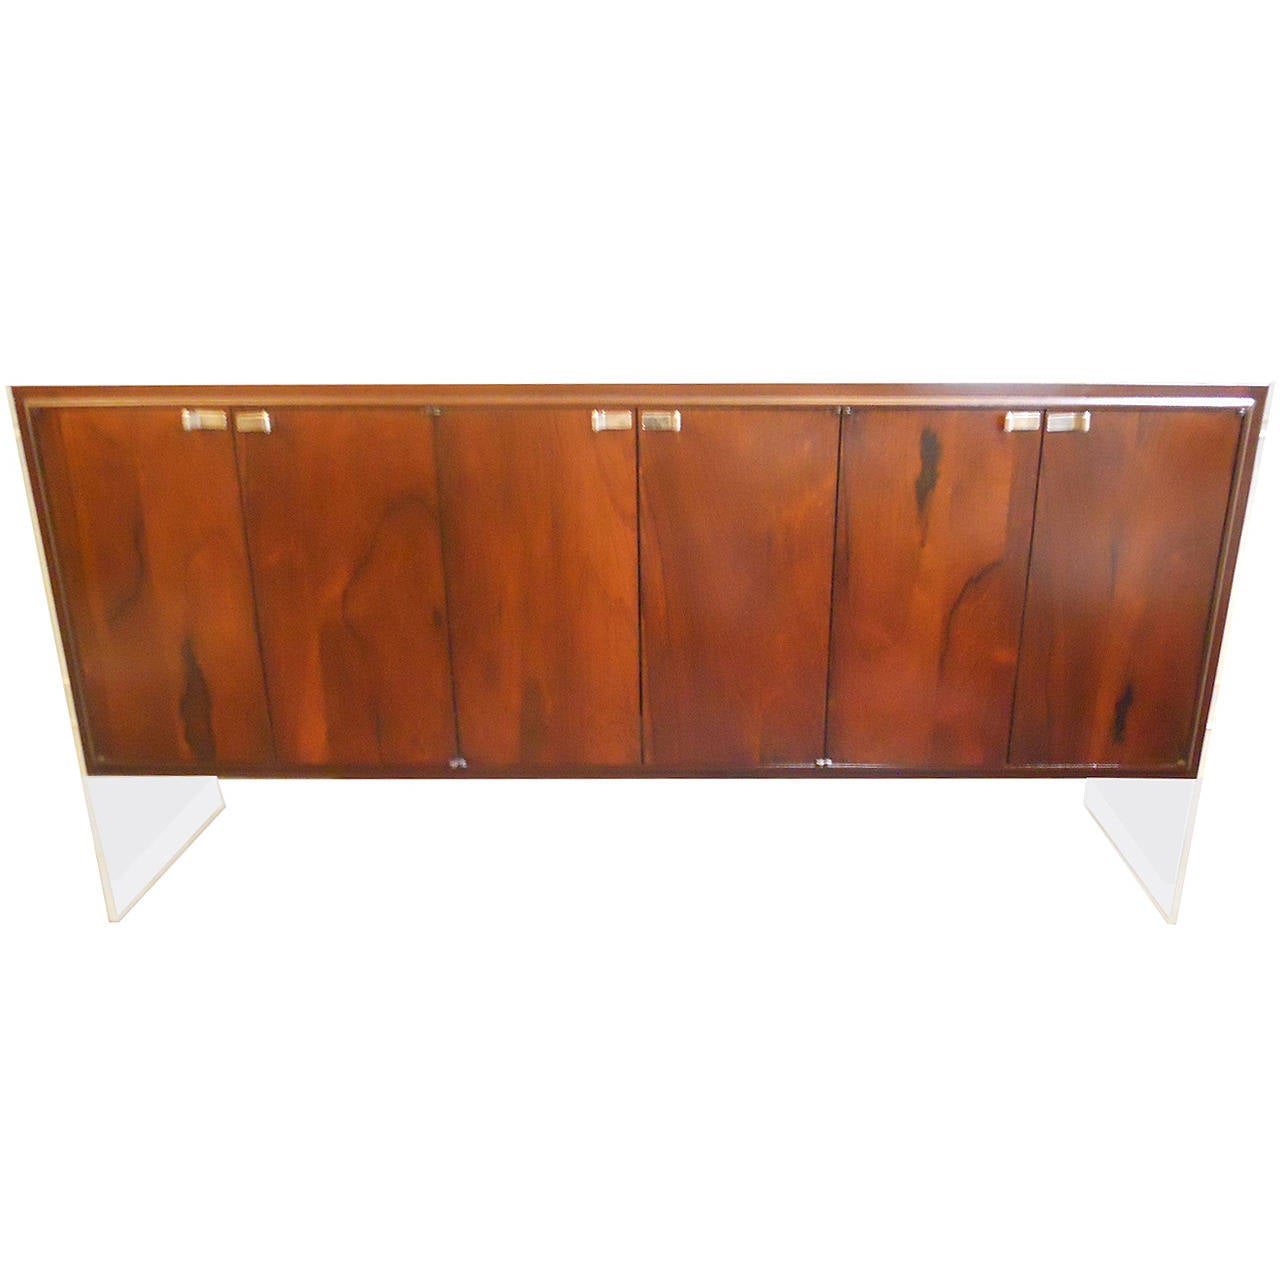 Modern credenza by flair inc at 1stdibs for Modern furniture inc